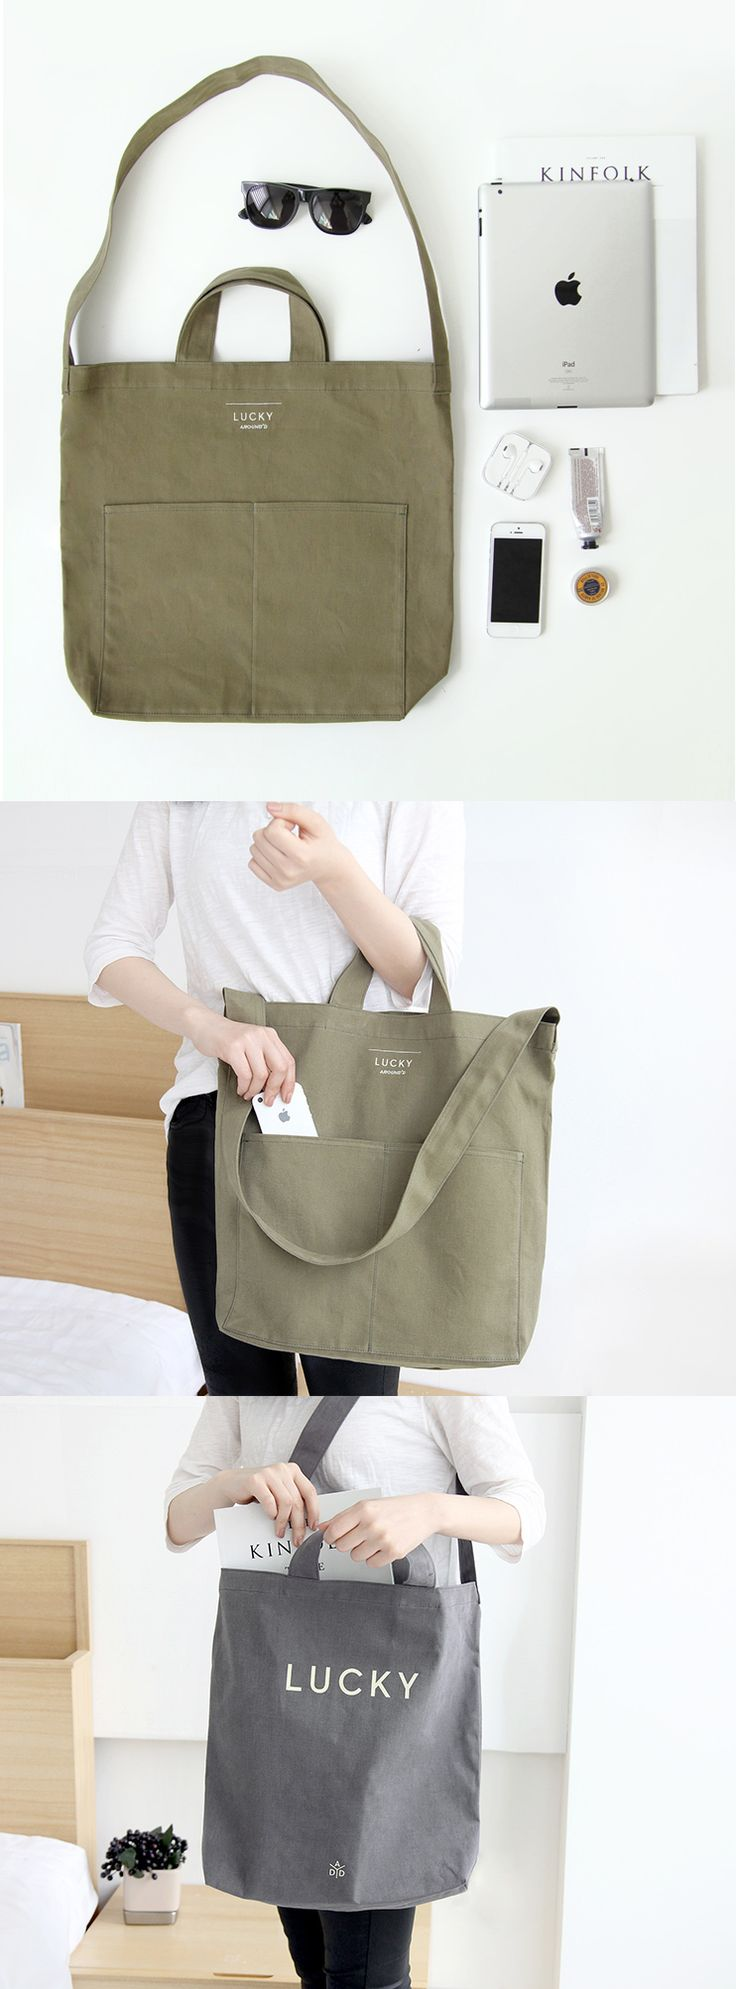 It's a tote...It's a shoulder bag...No, it's both! This Lucky Pocket Shoulder Bag is super spacious and will be whatever you want it to be. Shop, travel, and explore with this sturdy bag by your side. ^.~*